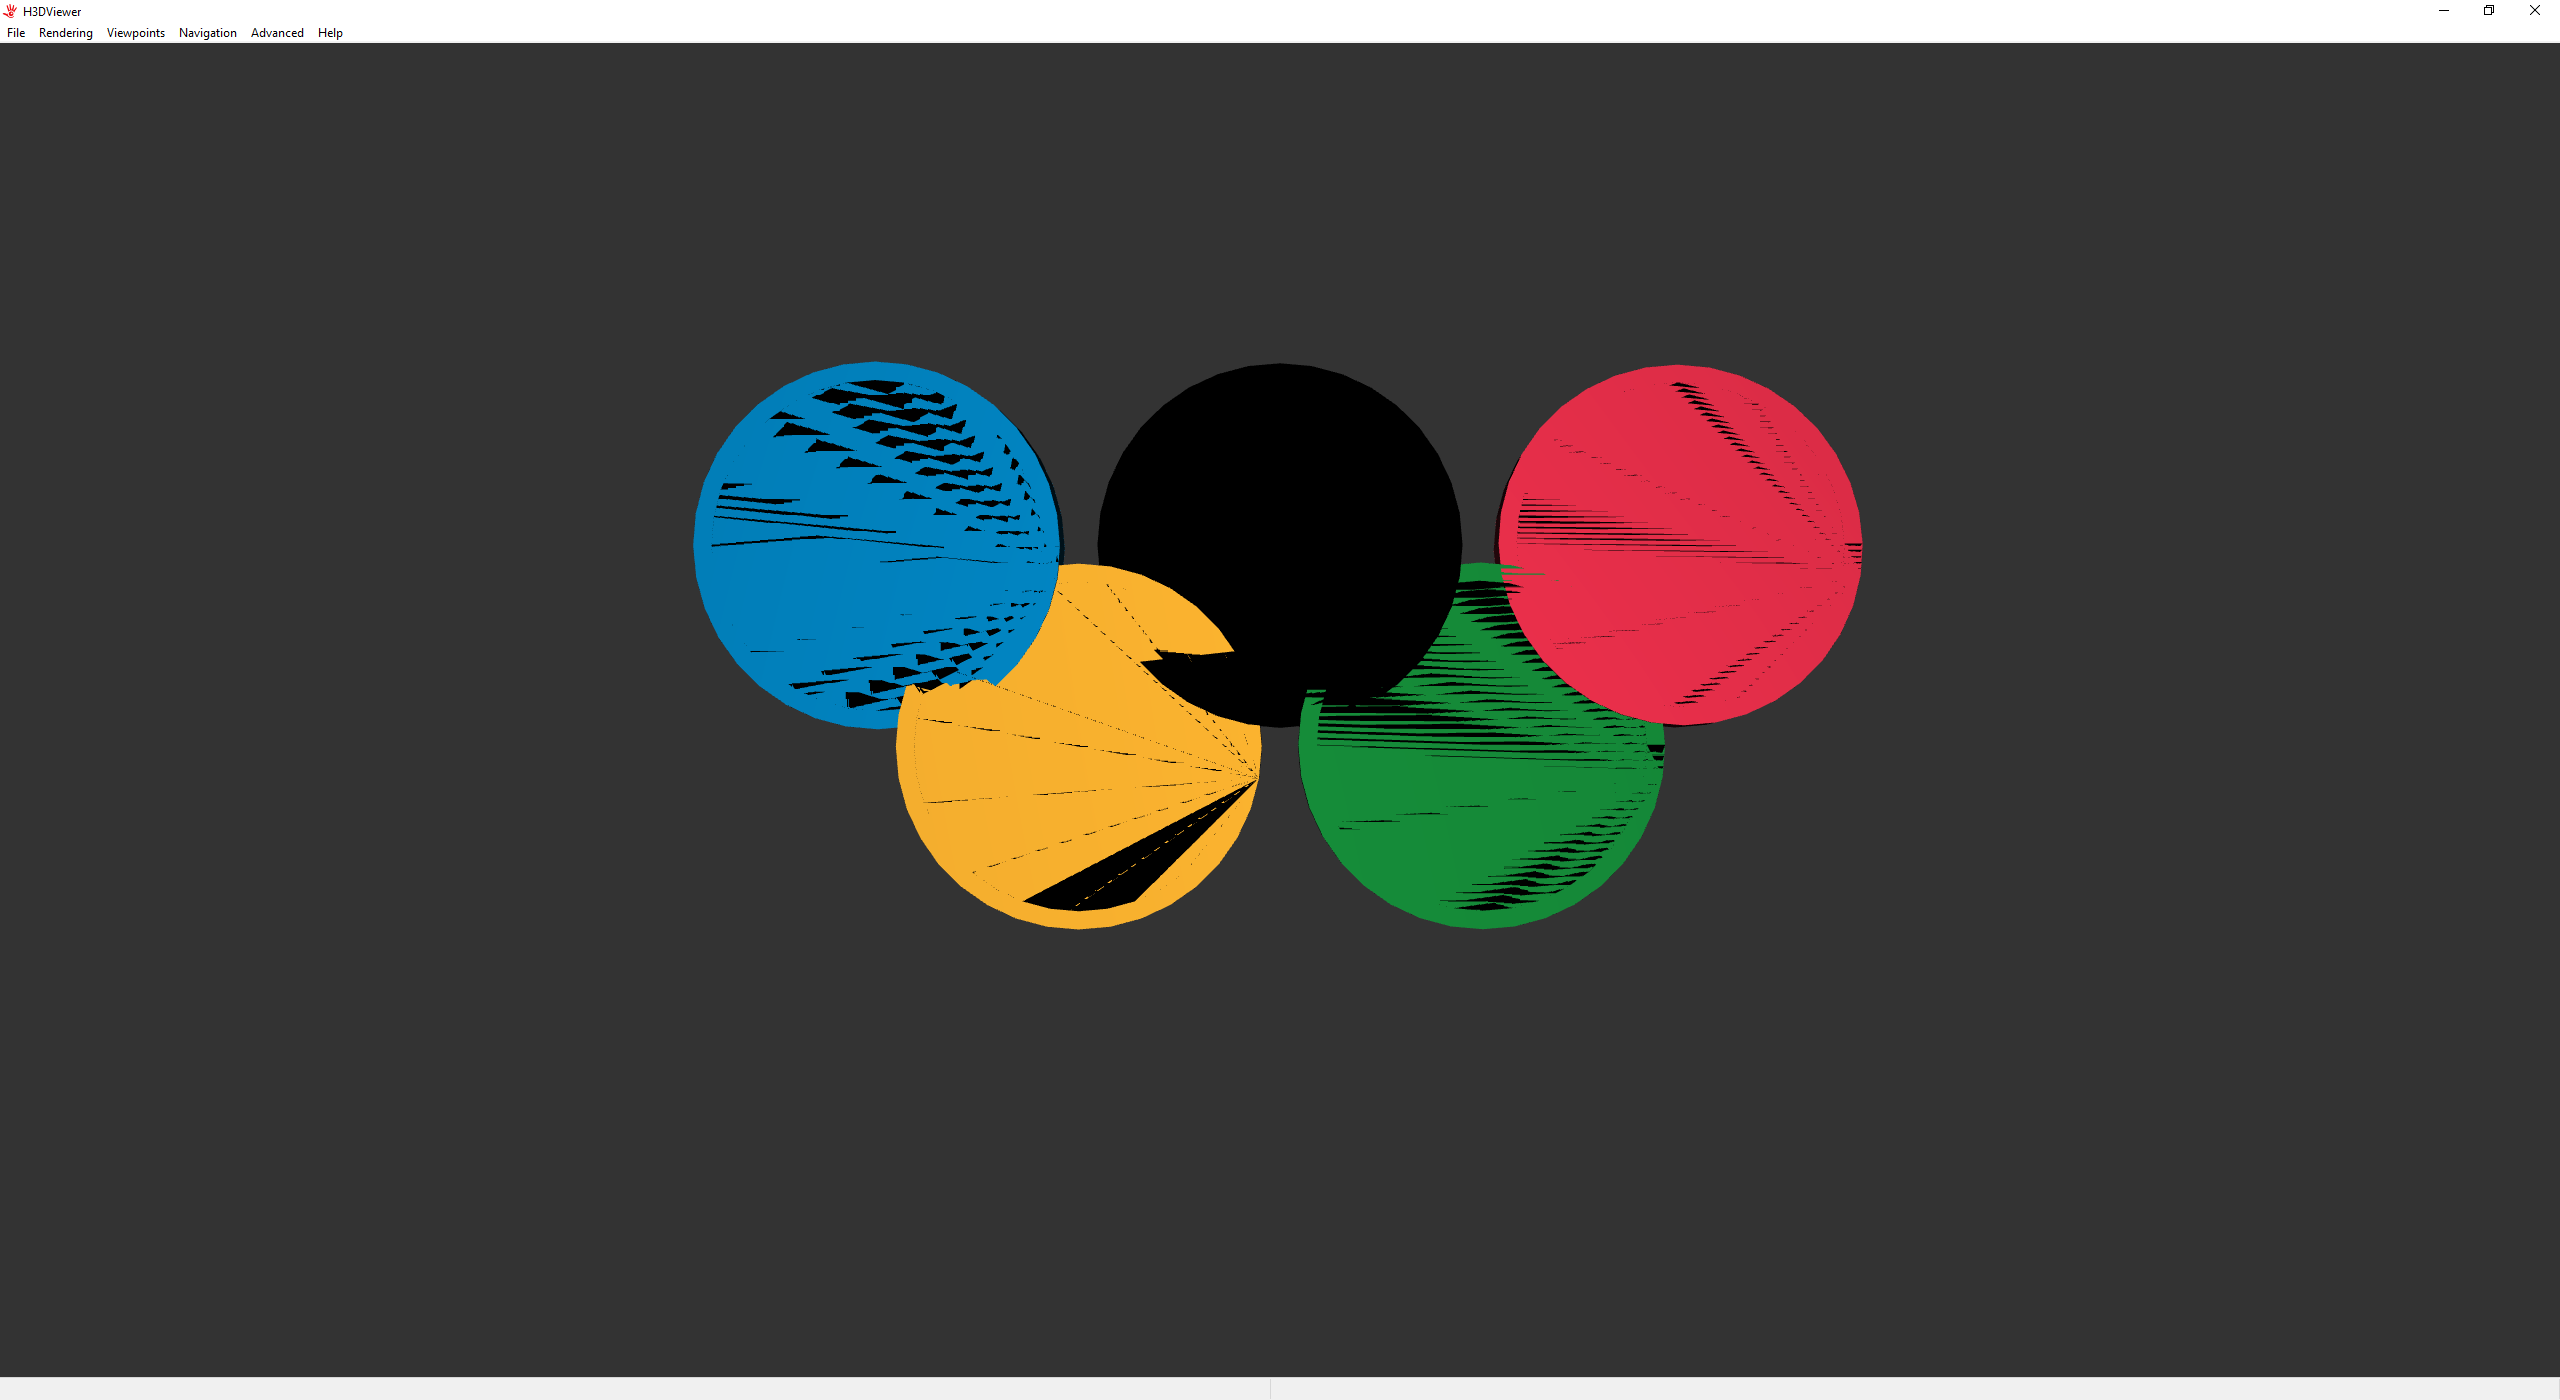 BrennenstuhlTobias/Screenshots/Player/Olympic Rings/OlympicRings.H3D Viewer.png